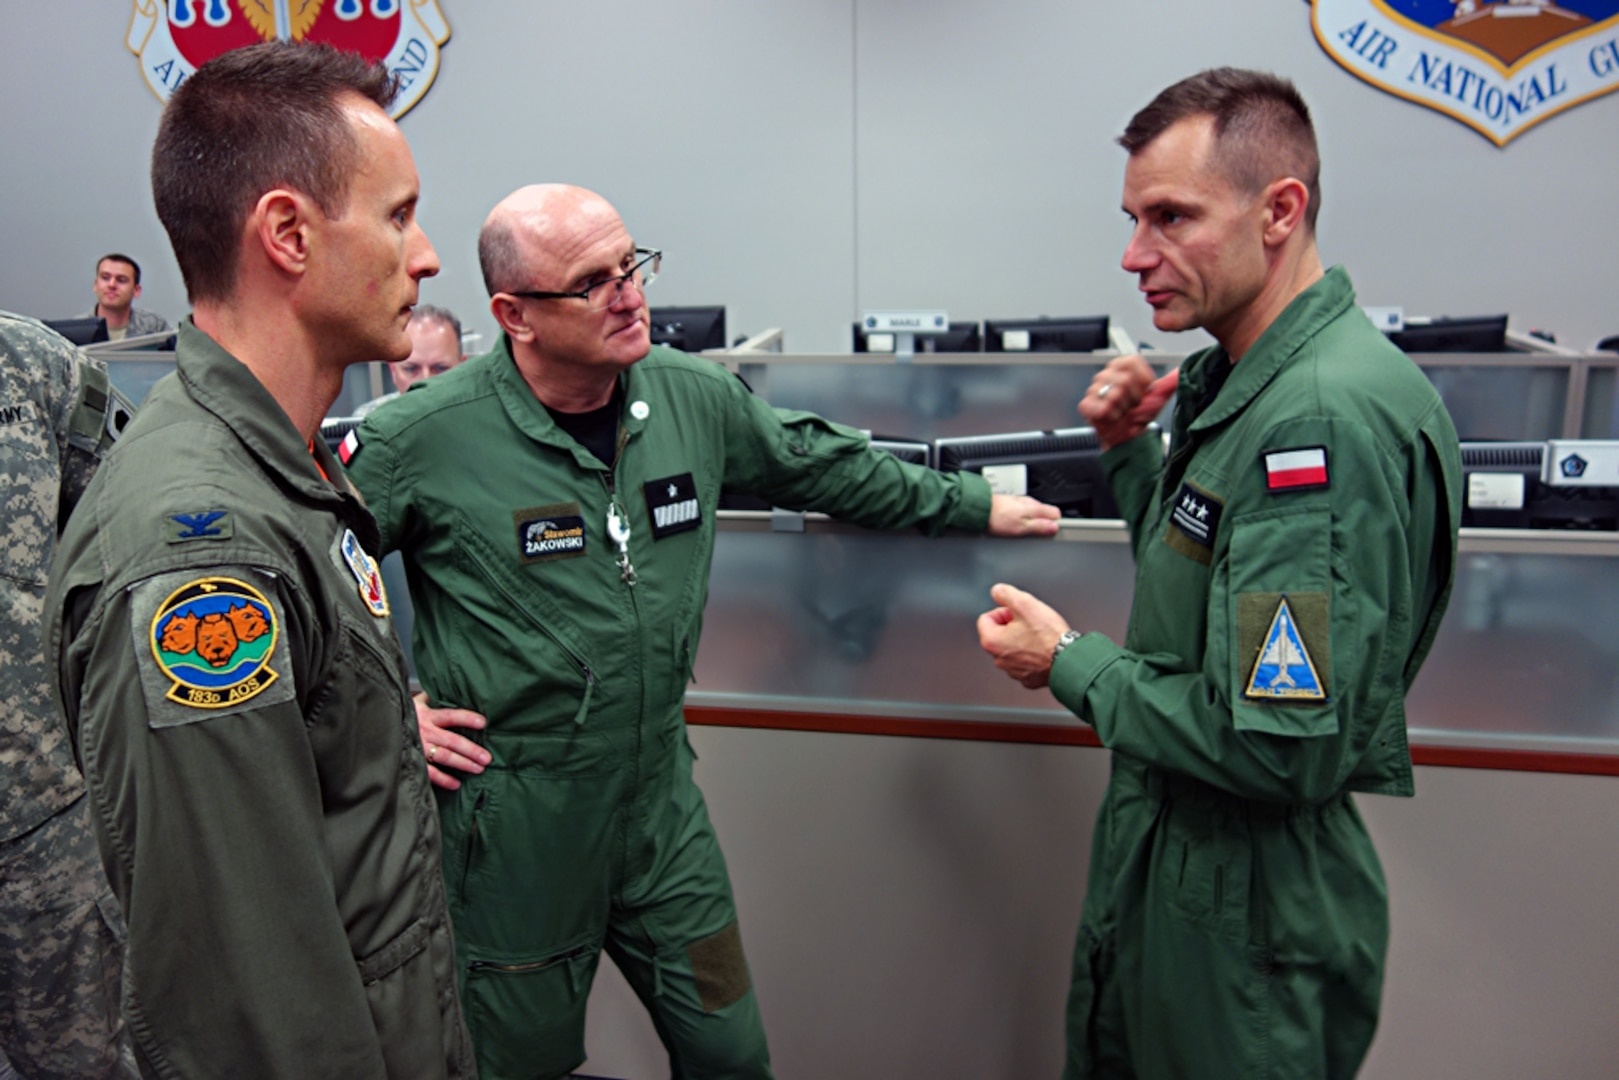 Dan McSeveney, left, commander of the 183d Combat Operations Squadron,discusses air operations with Brig. Gen. Slawomir Zakowski, center, and Col. Robert Weissgerber, right, from the Air Operations Center-Air Component Command, Warsaw, Poland, during a simulated battle exercise as part of an information and training exchange visit May 12 - 16, 2016, in Springfield, Ill.